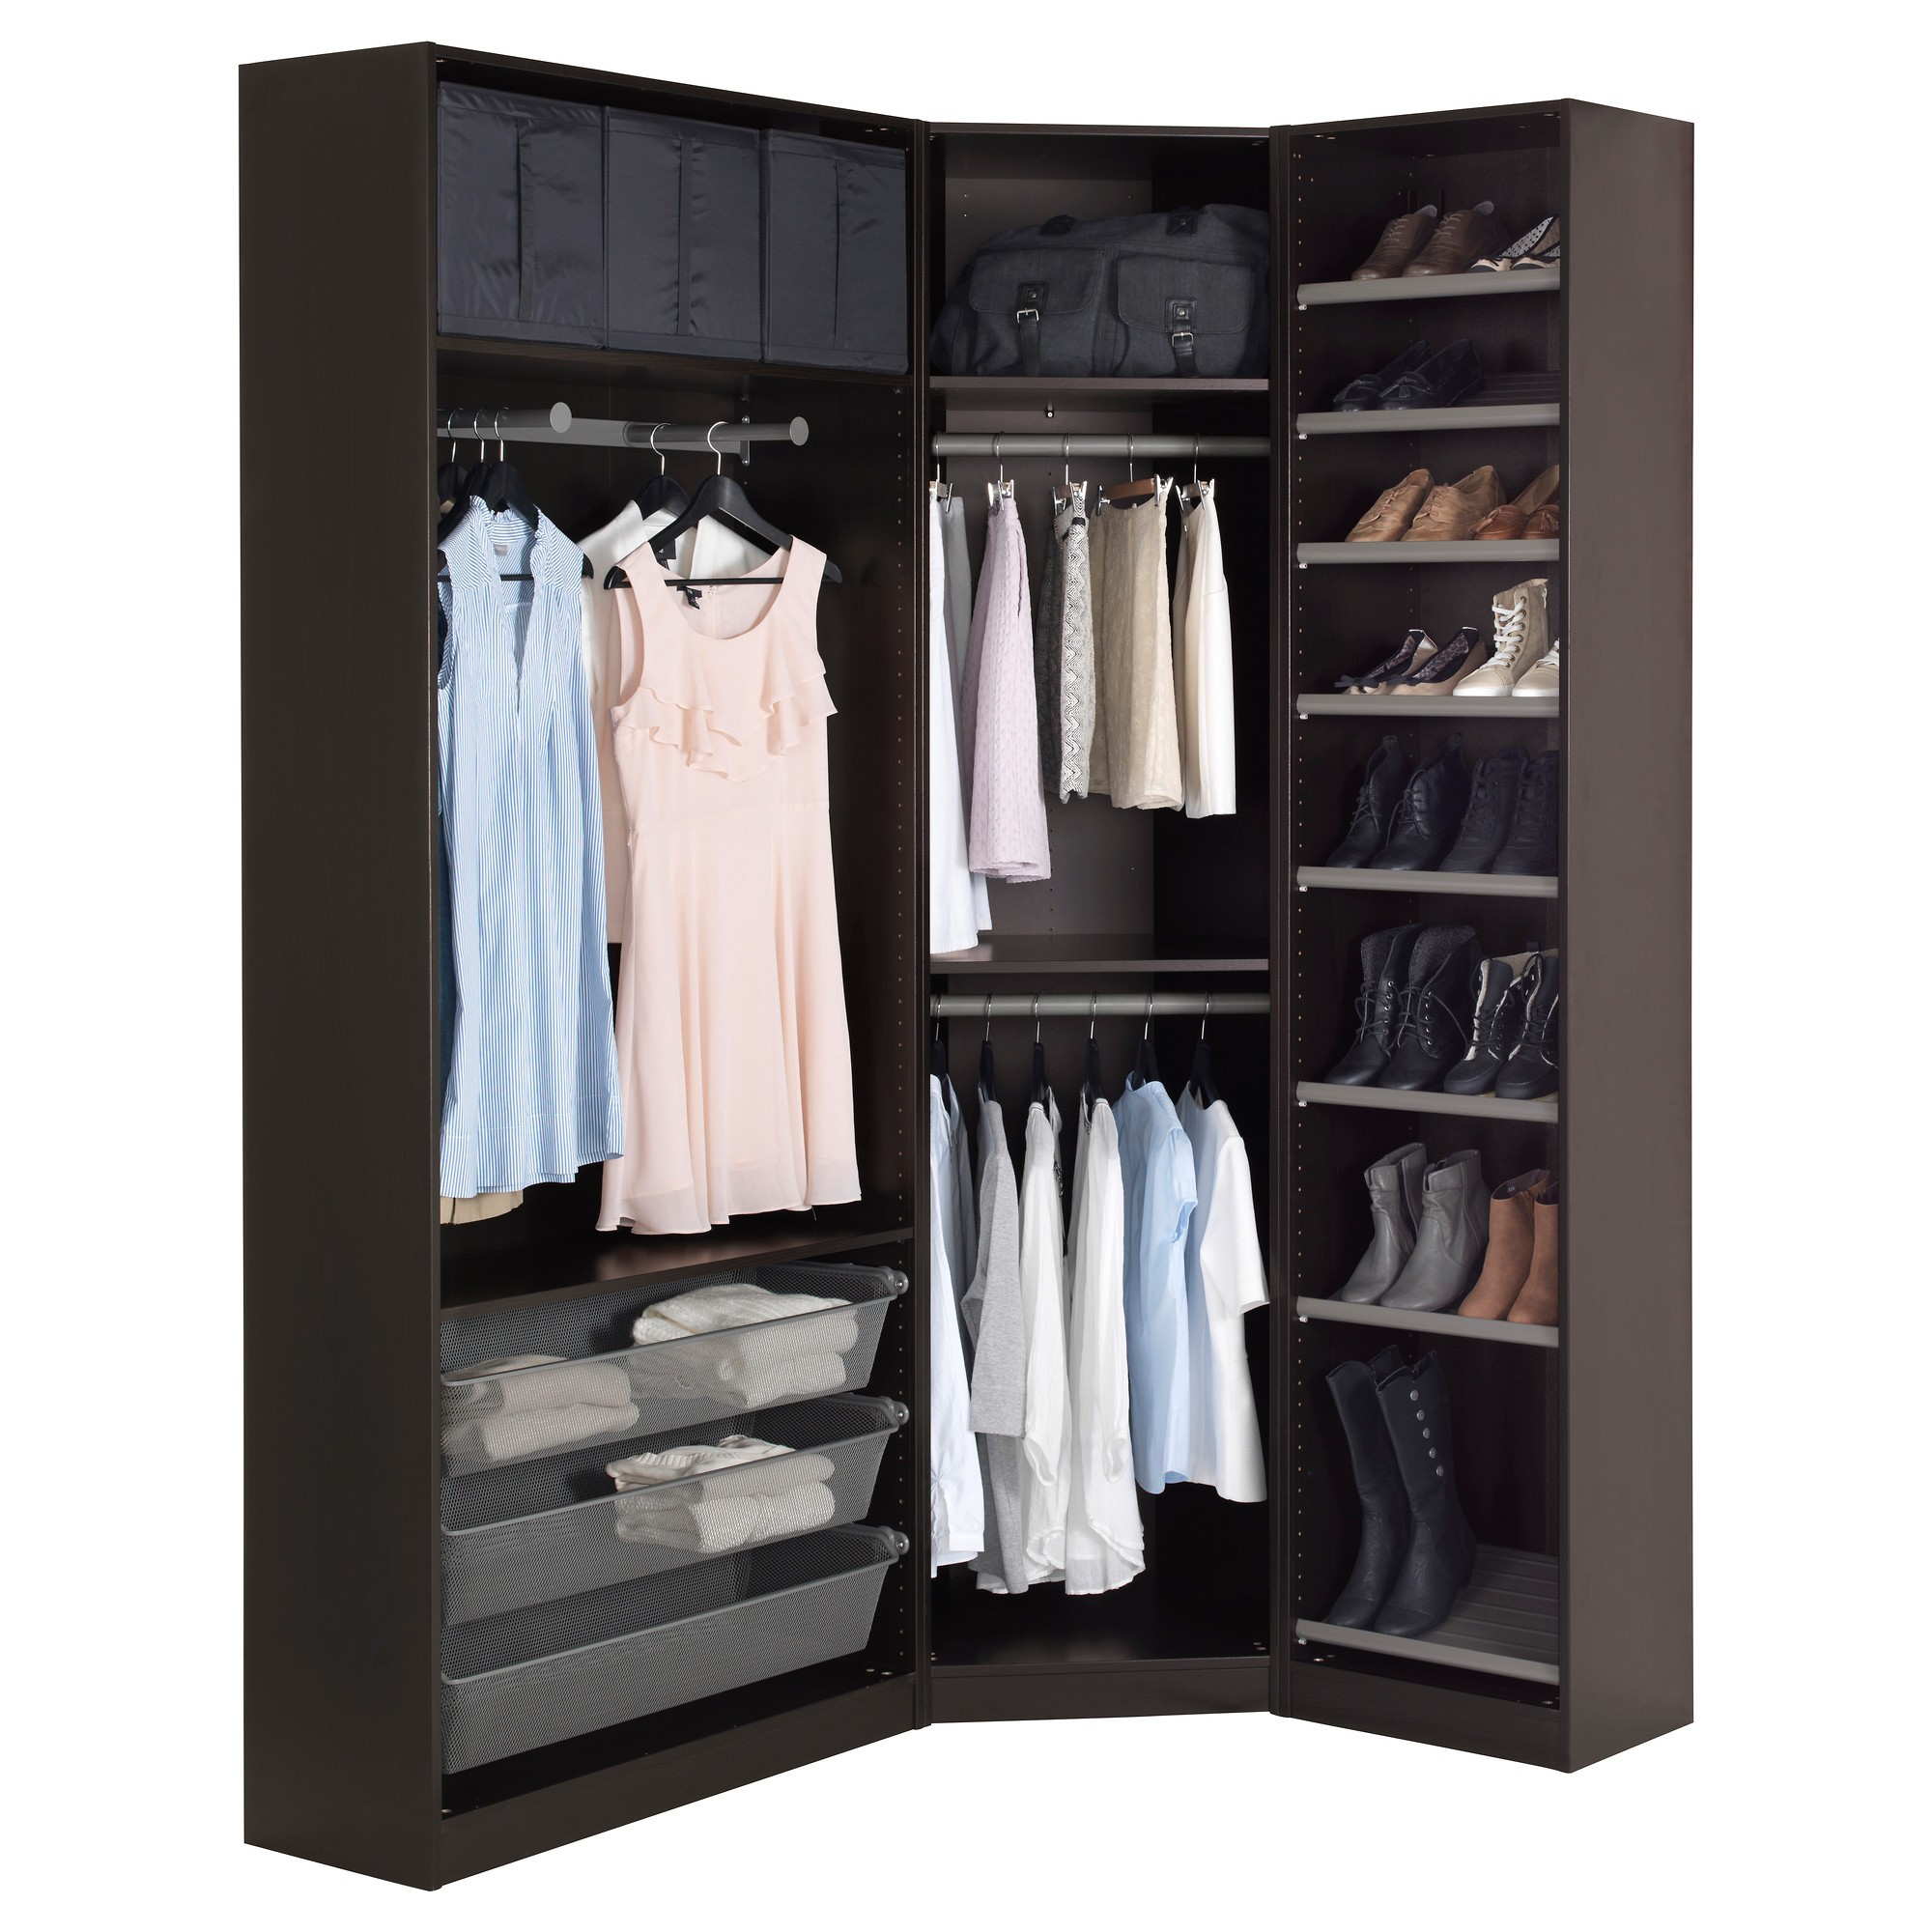 armoire d angle dressing maison design. Black Bedroom Furniture Sets. Home Design Ideas